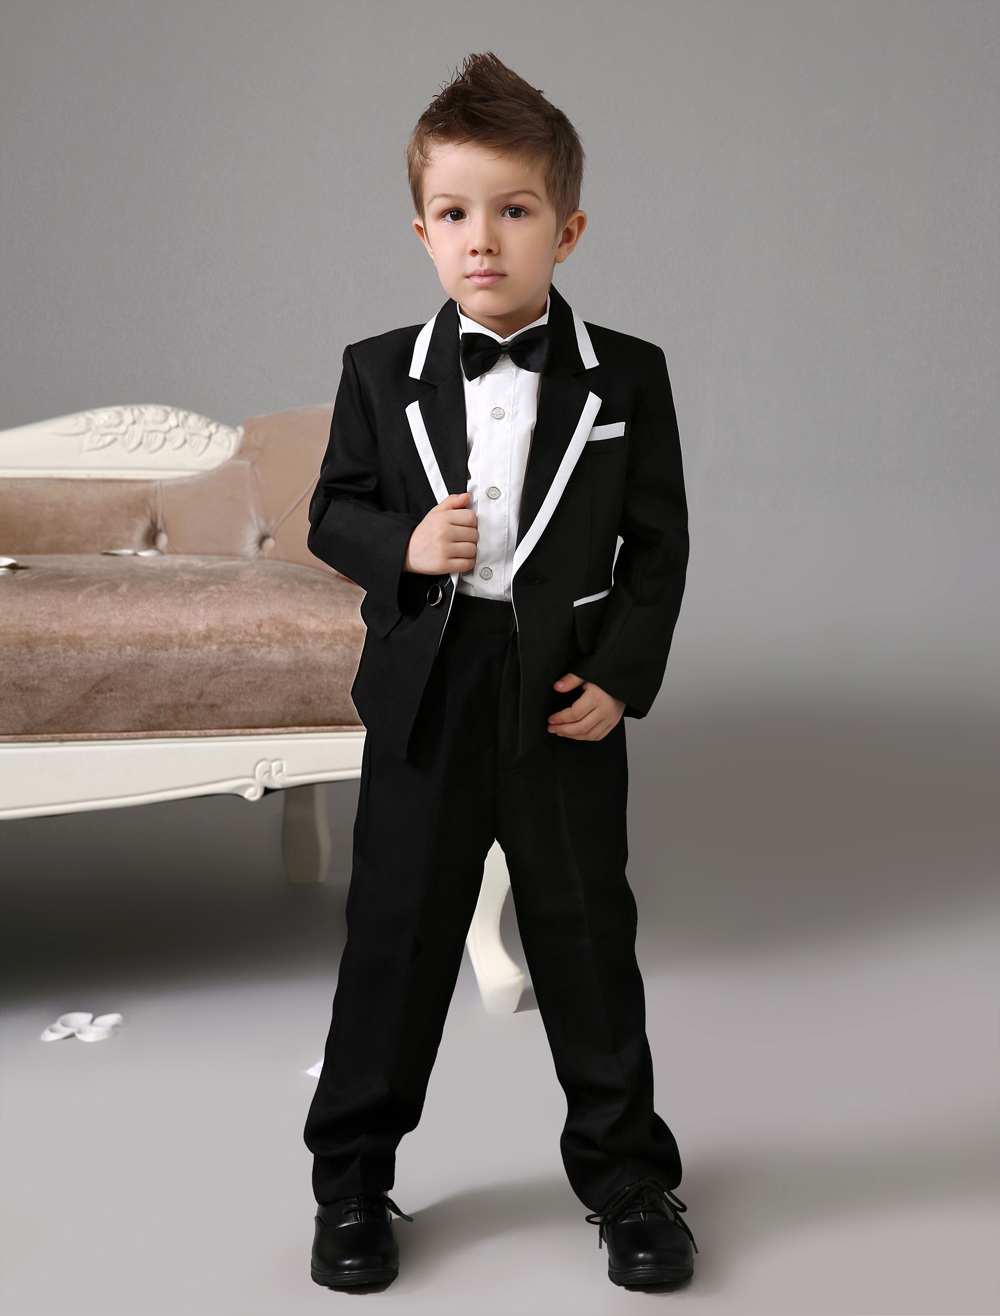 Four Pieces Luxurious formal black boys suits Ring Bearer Suits kids Tuxedo With Black Bow Tie